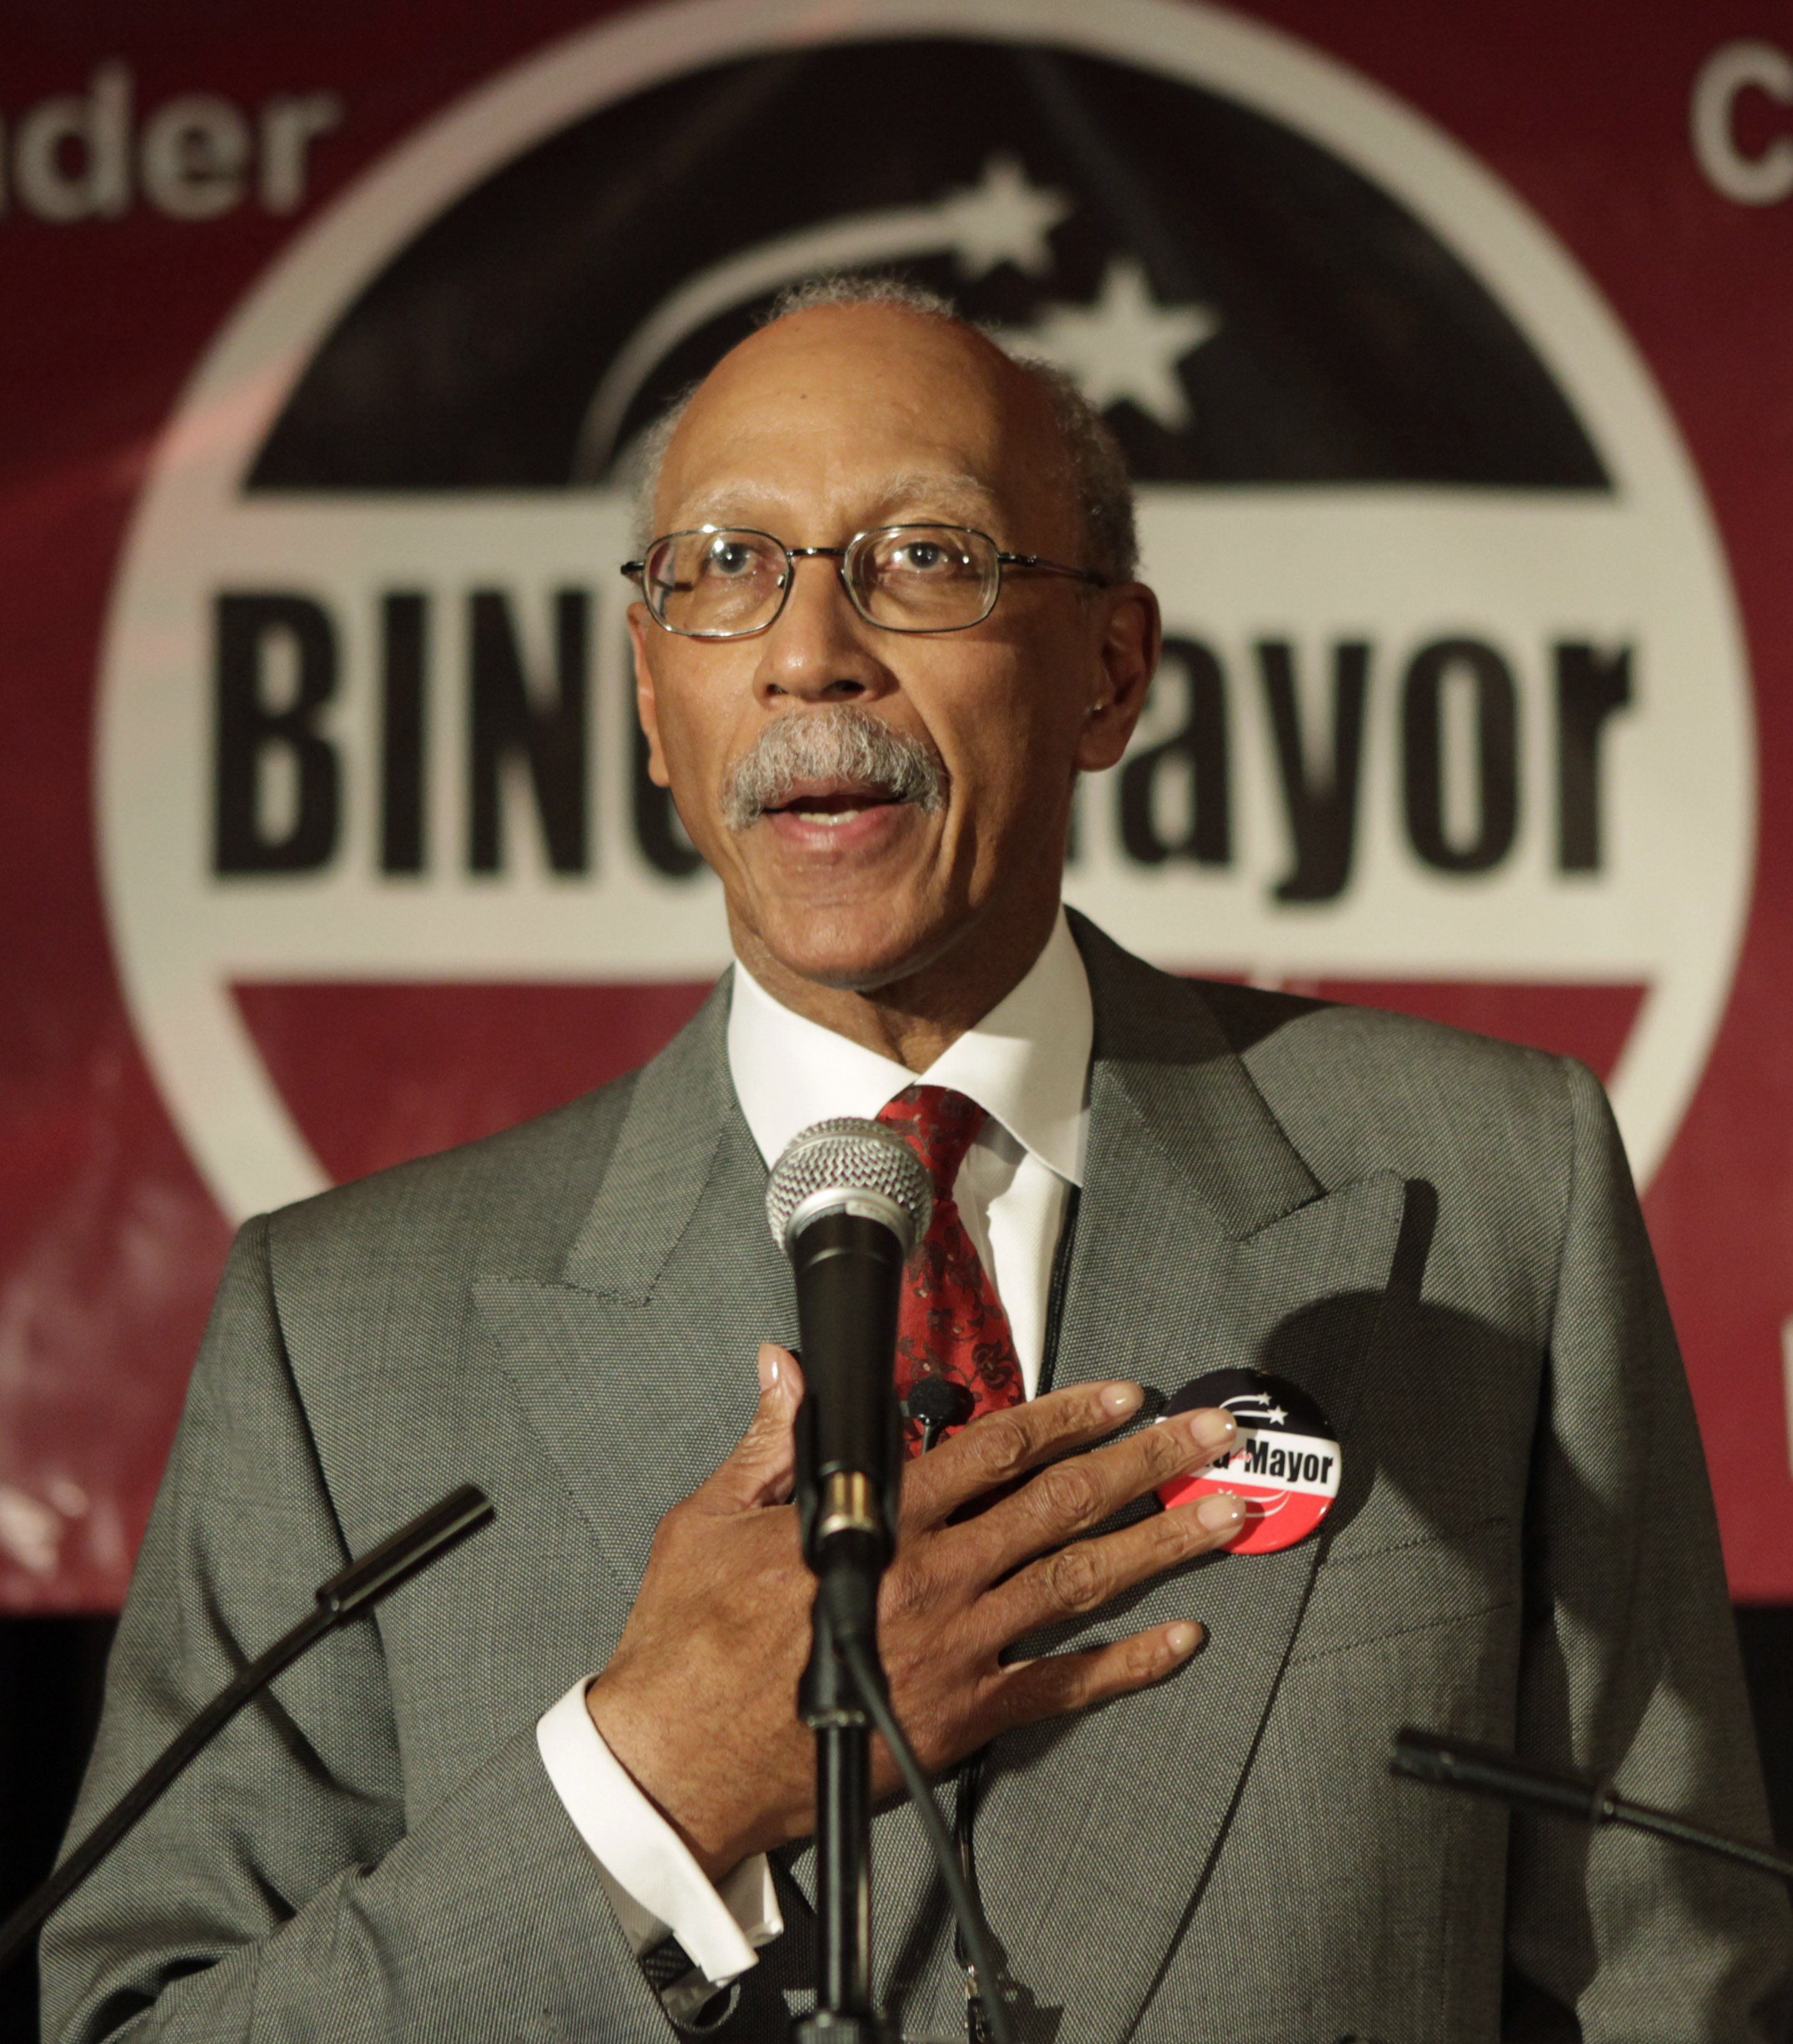 25 30 Www Bing Com: Dave Bing Opts Out Of Crowded Detroit